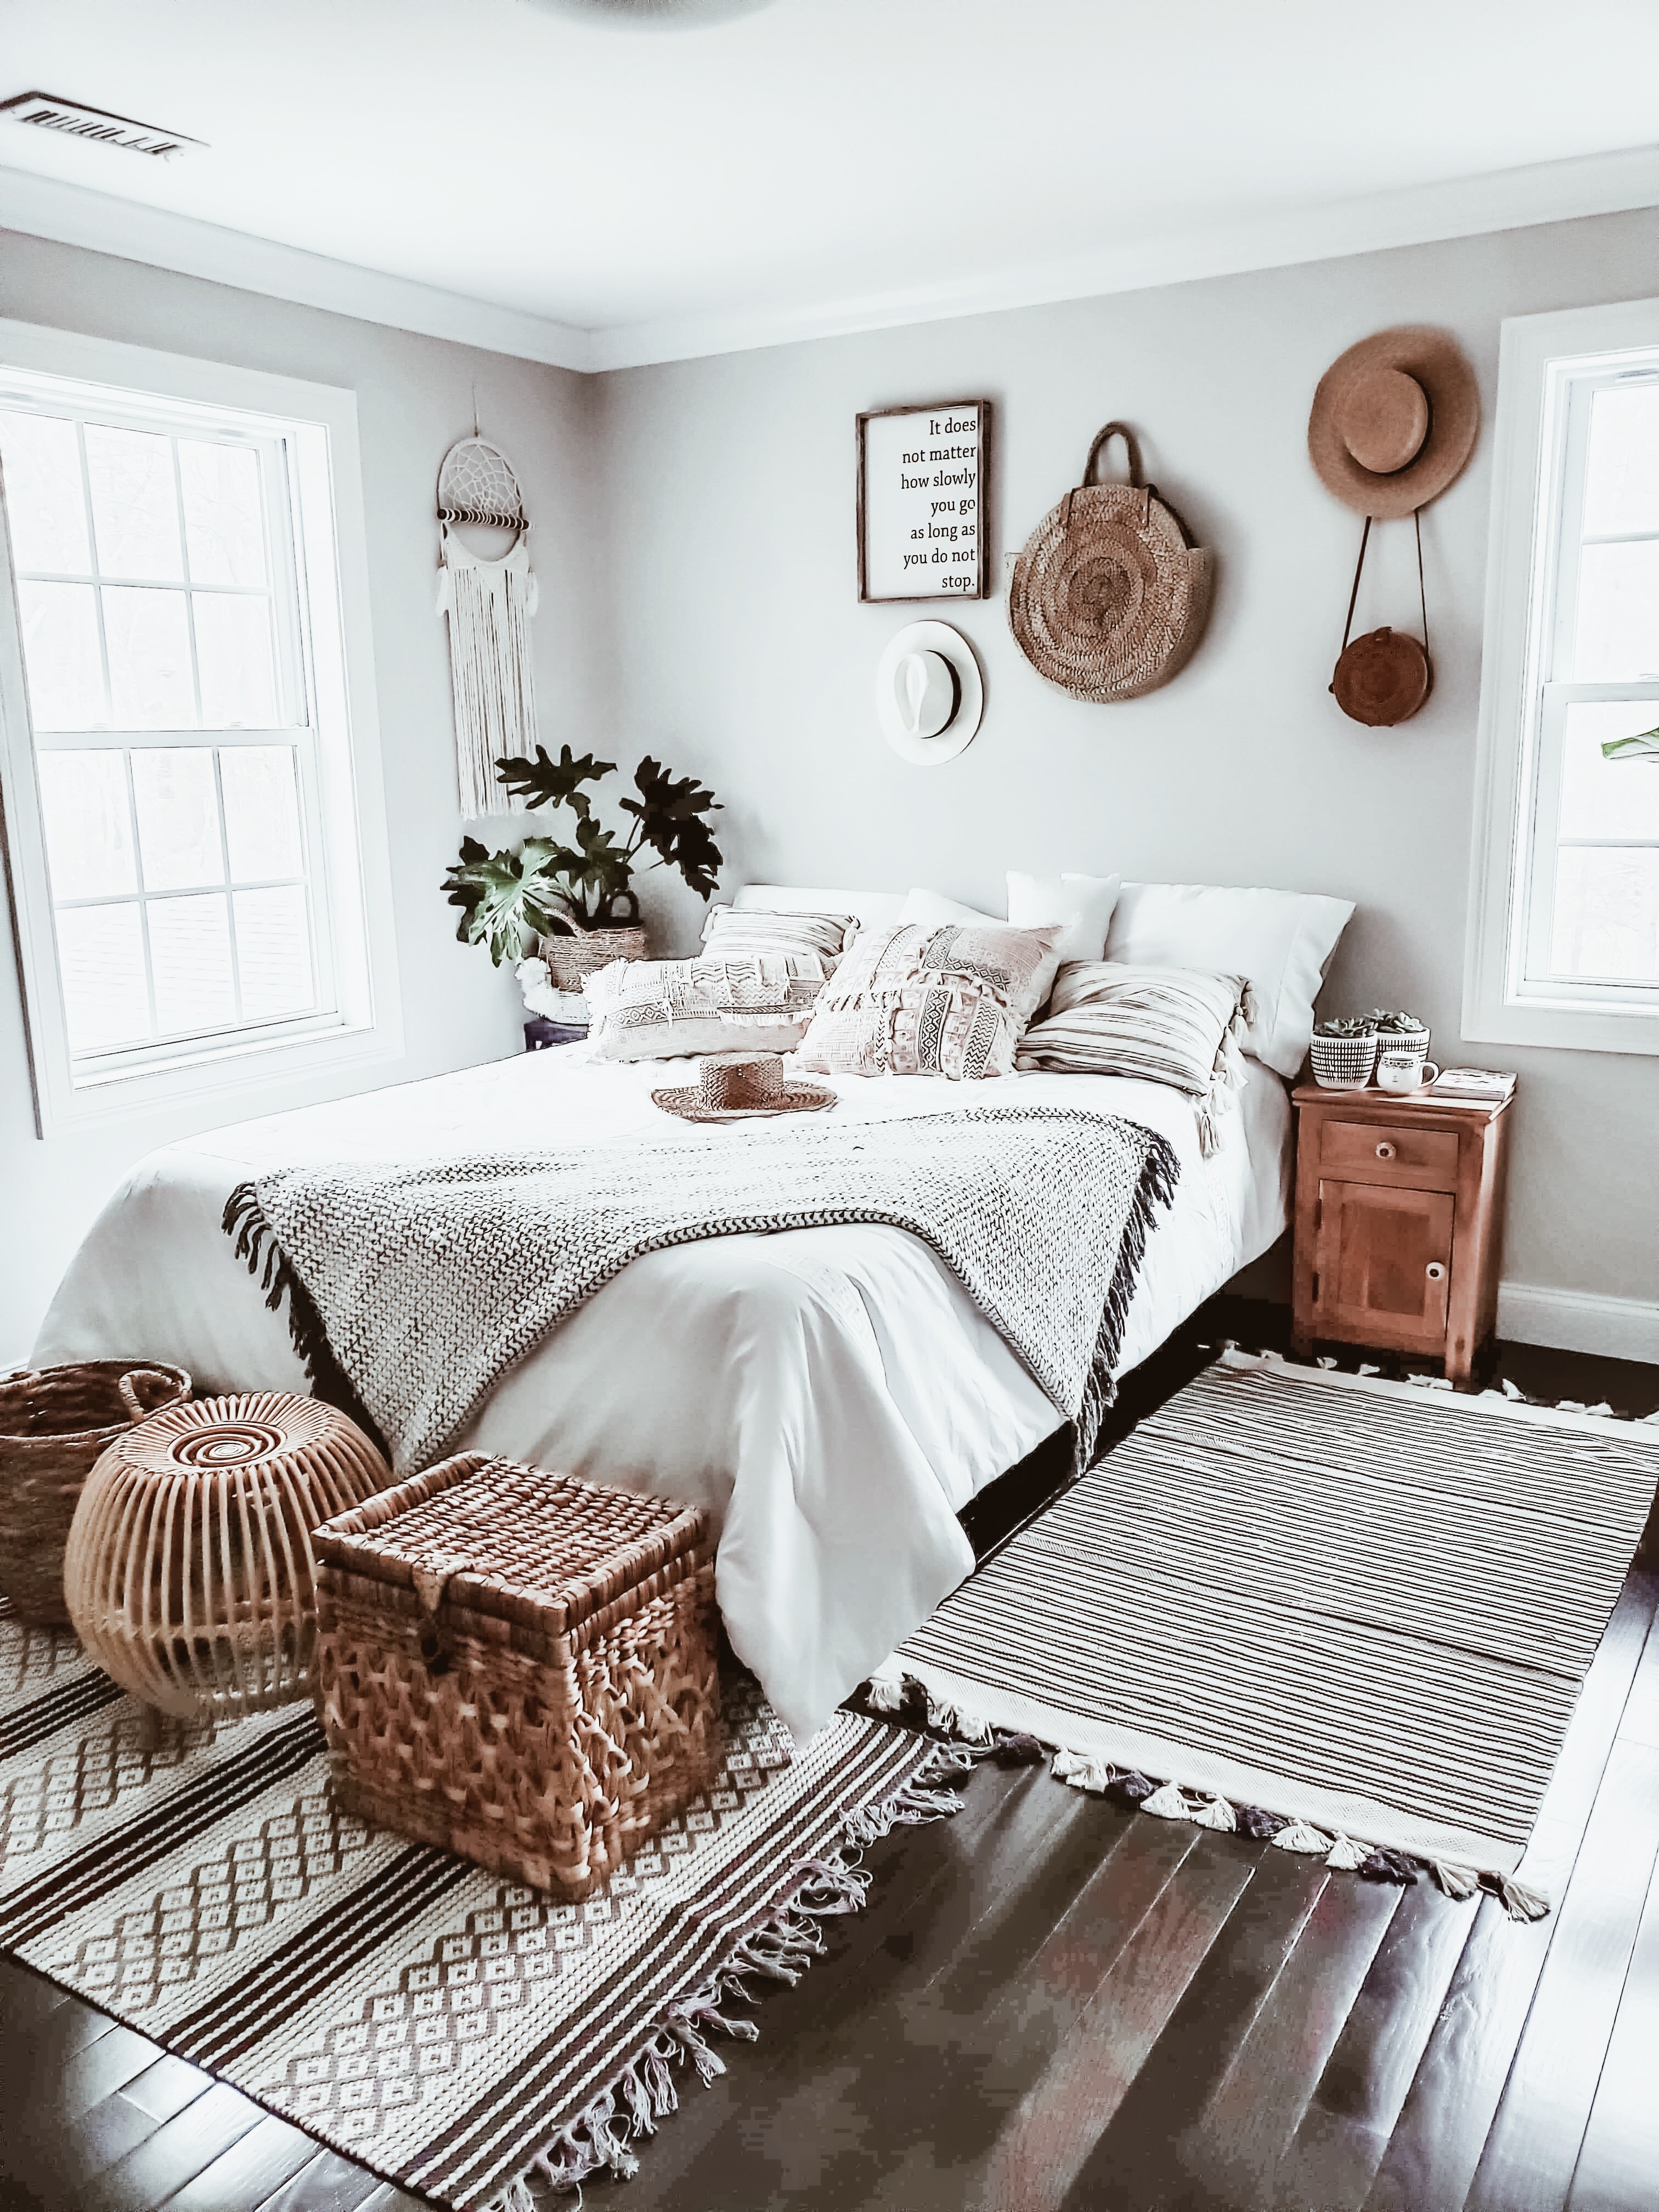 chic bedroom ideas home decor edition boho chic bedroom makeover wander x luxe 9259